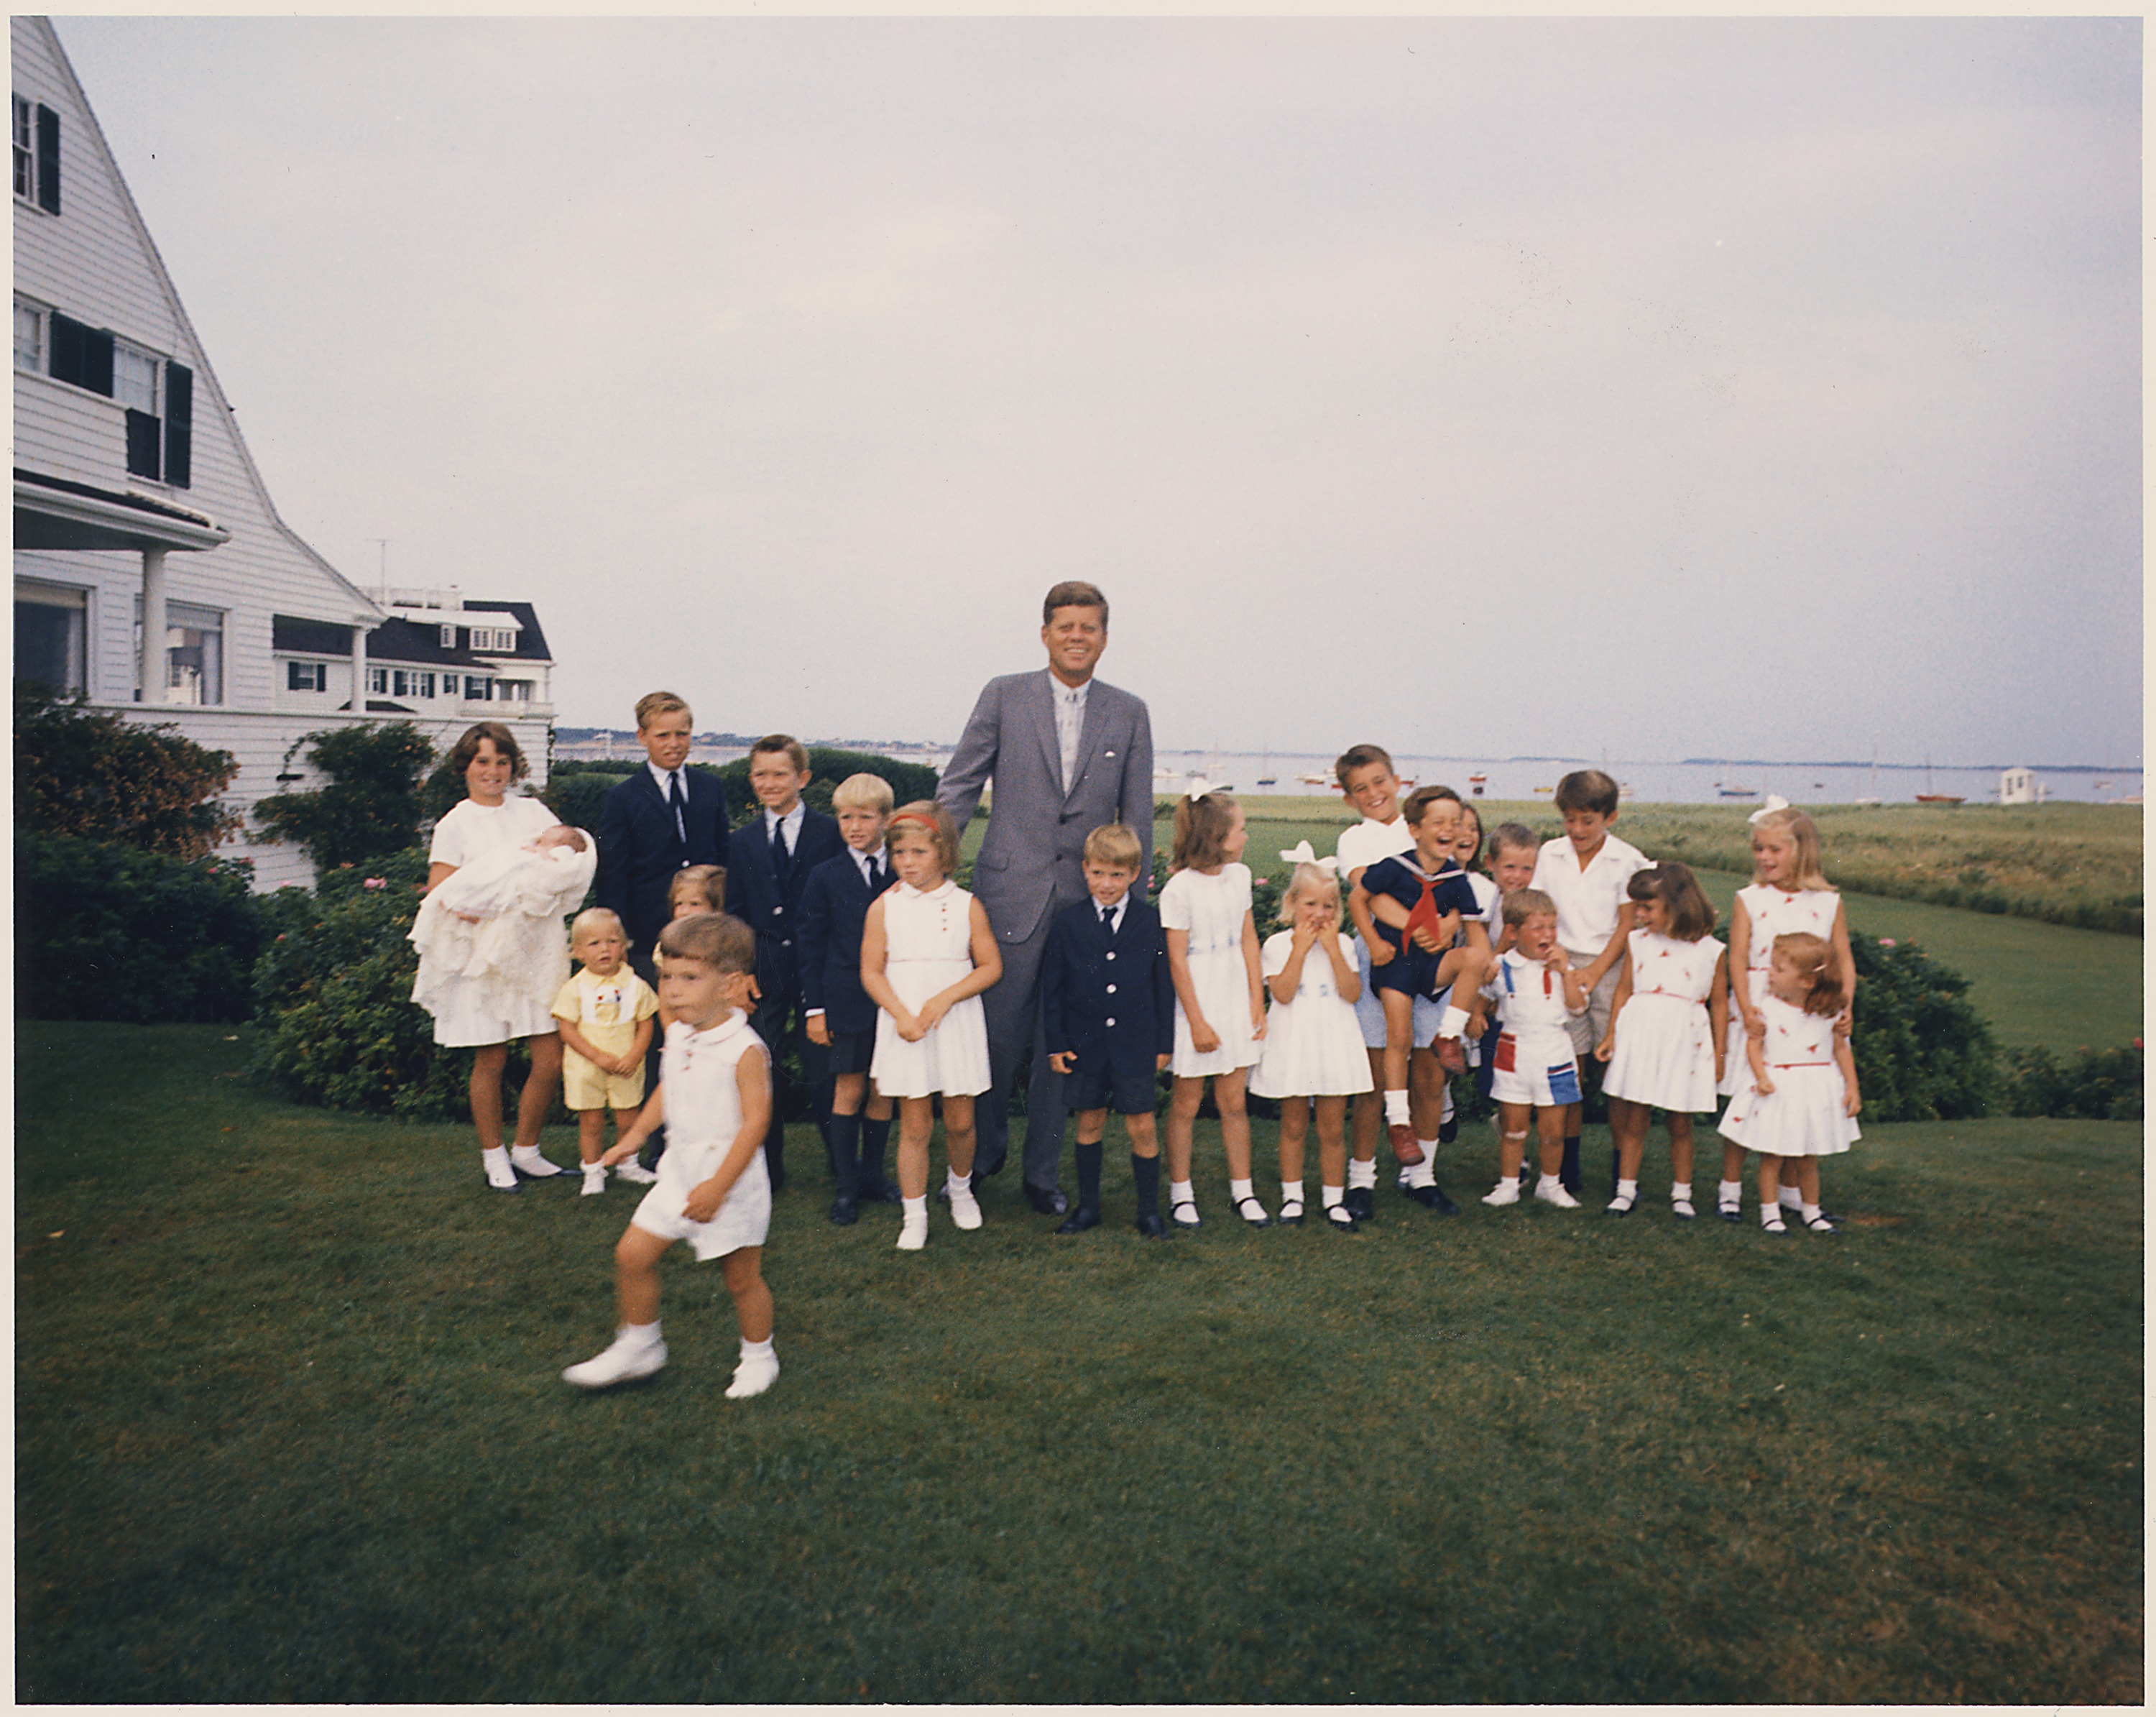 File hyannisport weekend president kennedy with children nara wikimedia commons - Houses for families withchild ...